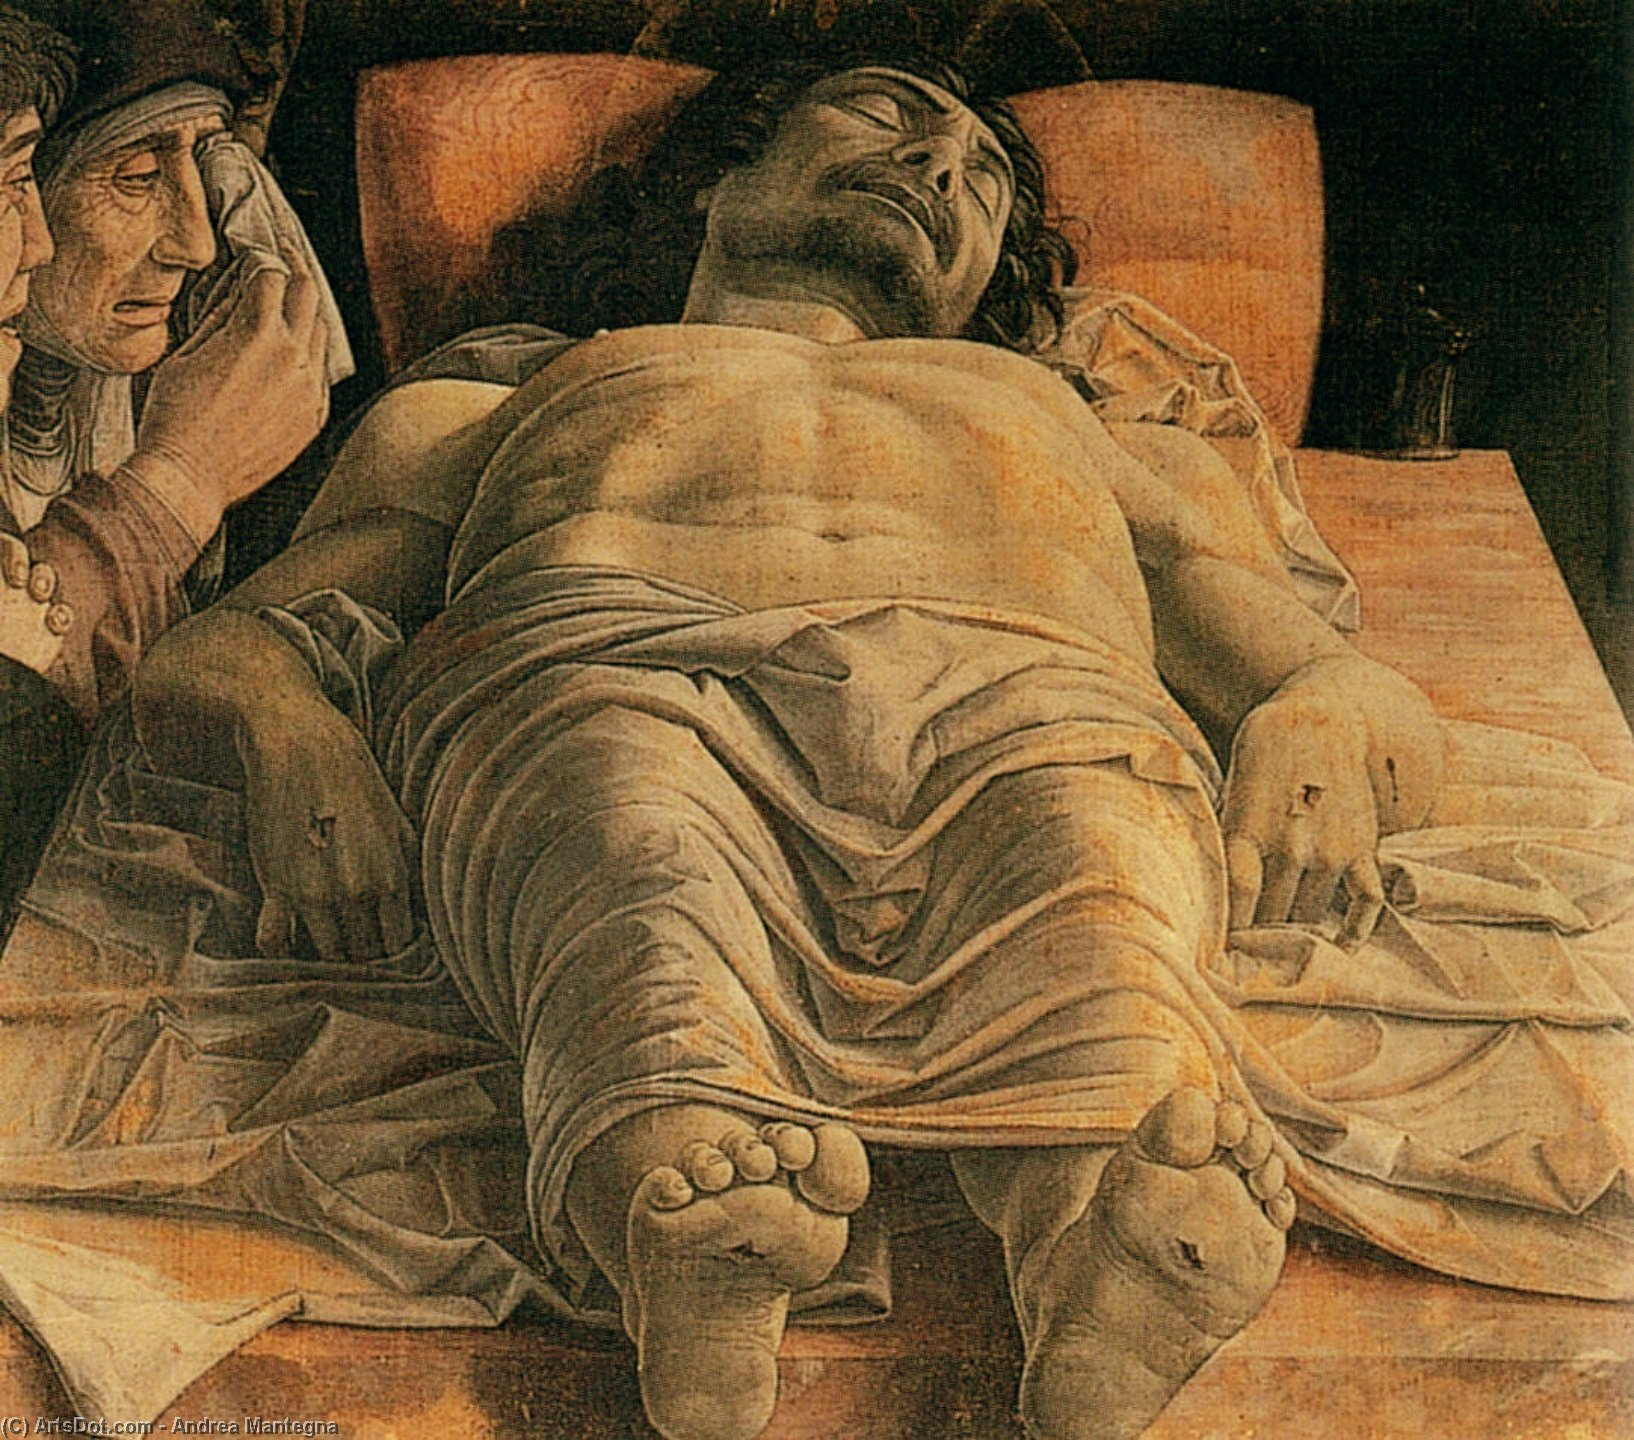 Wikioo.org - The Encyclopedia of Fine Arts - Painting, Artwork by Andrea Mantegna - The Lamentation over the Dead Christ